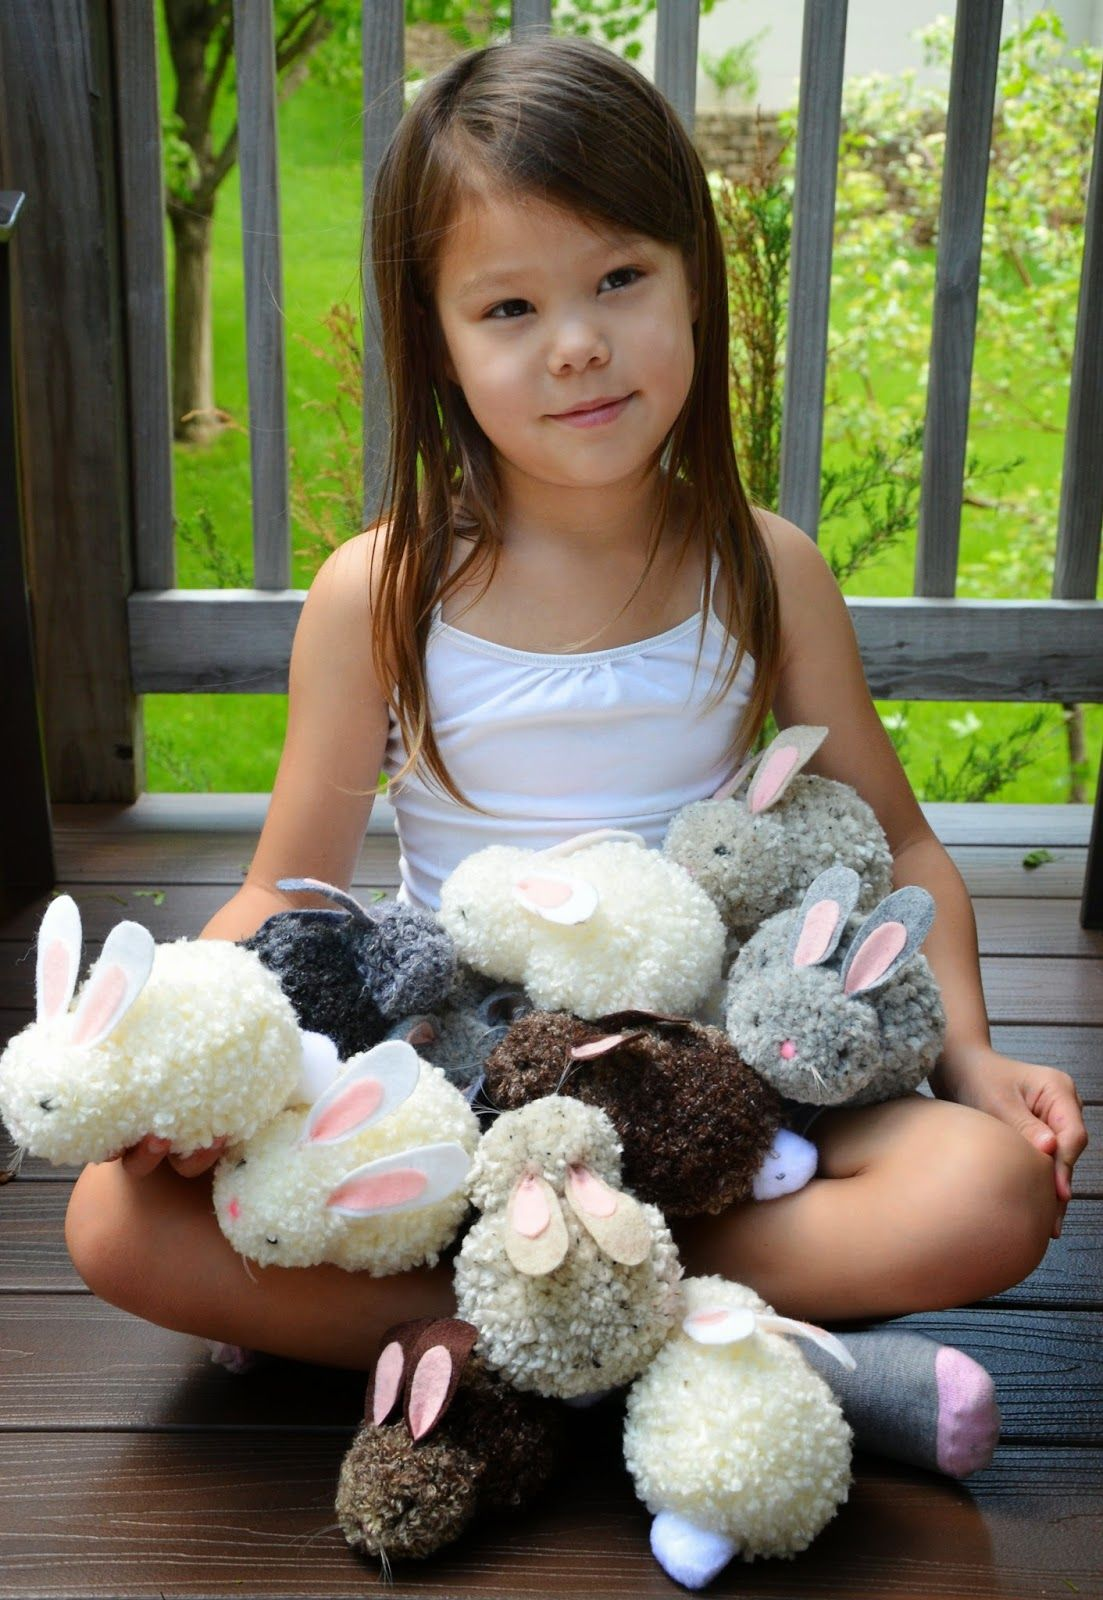 Easy To Make Pom Pom Bunnies For The Kids To Hide With The Eggs For Next